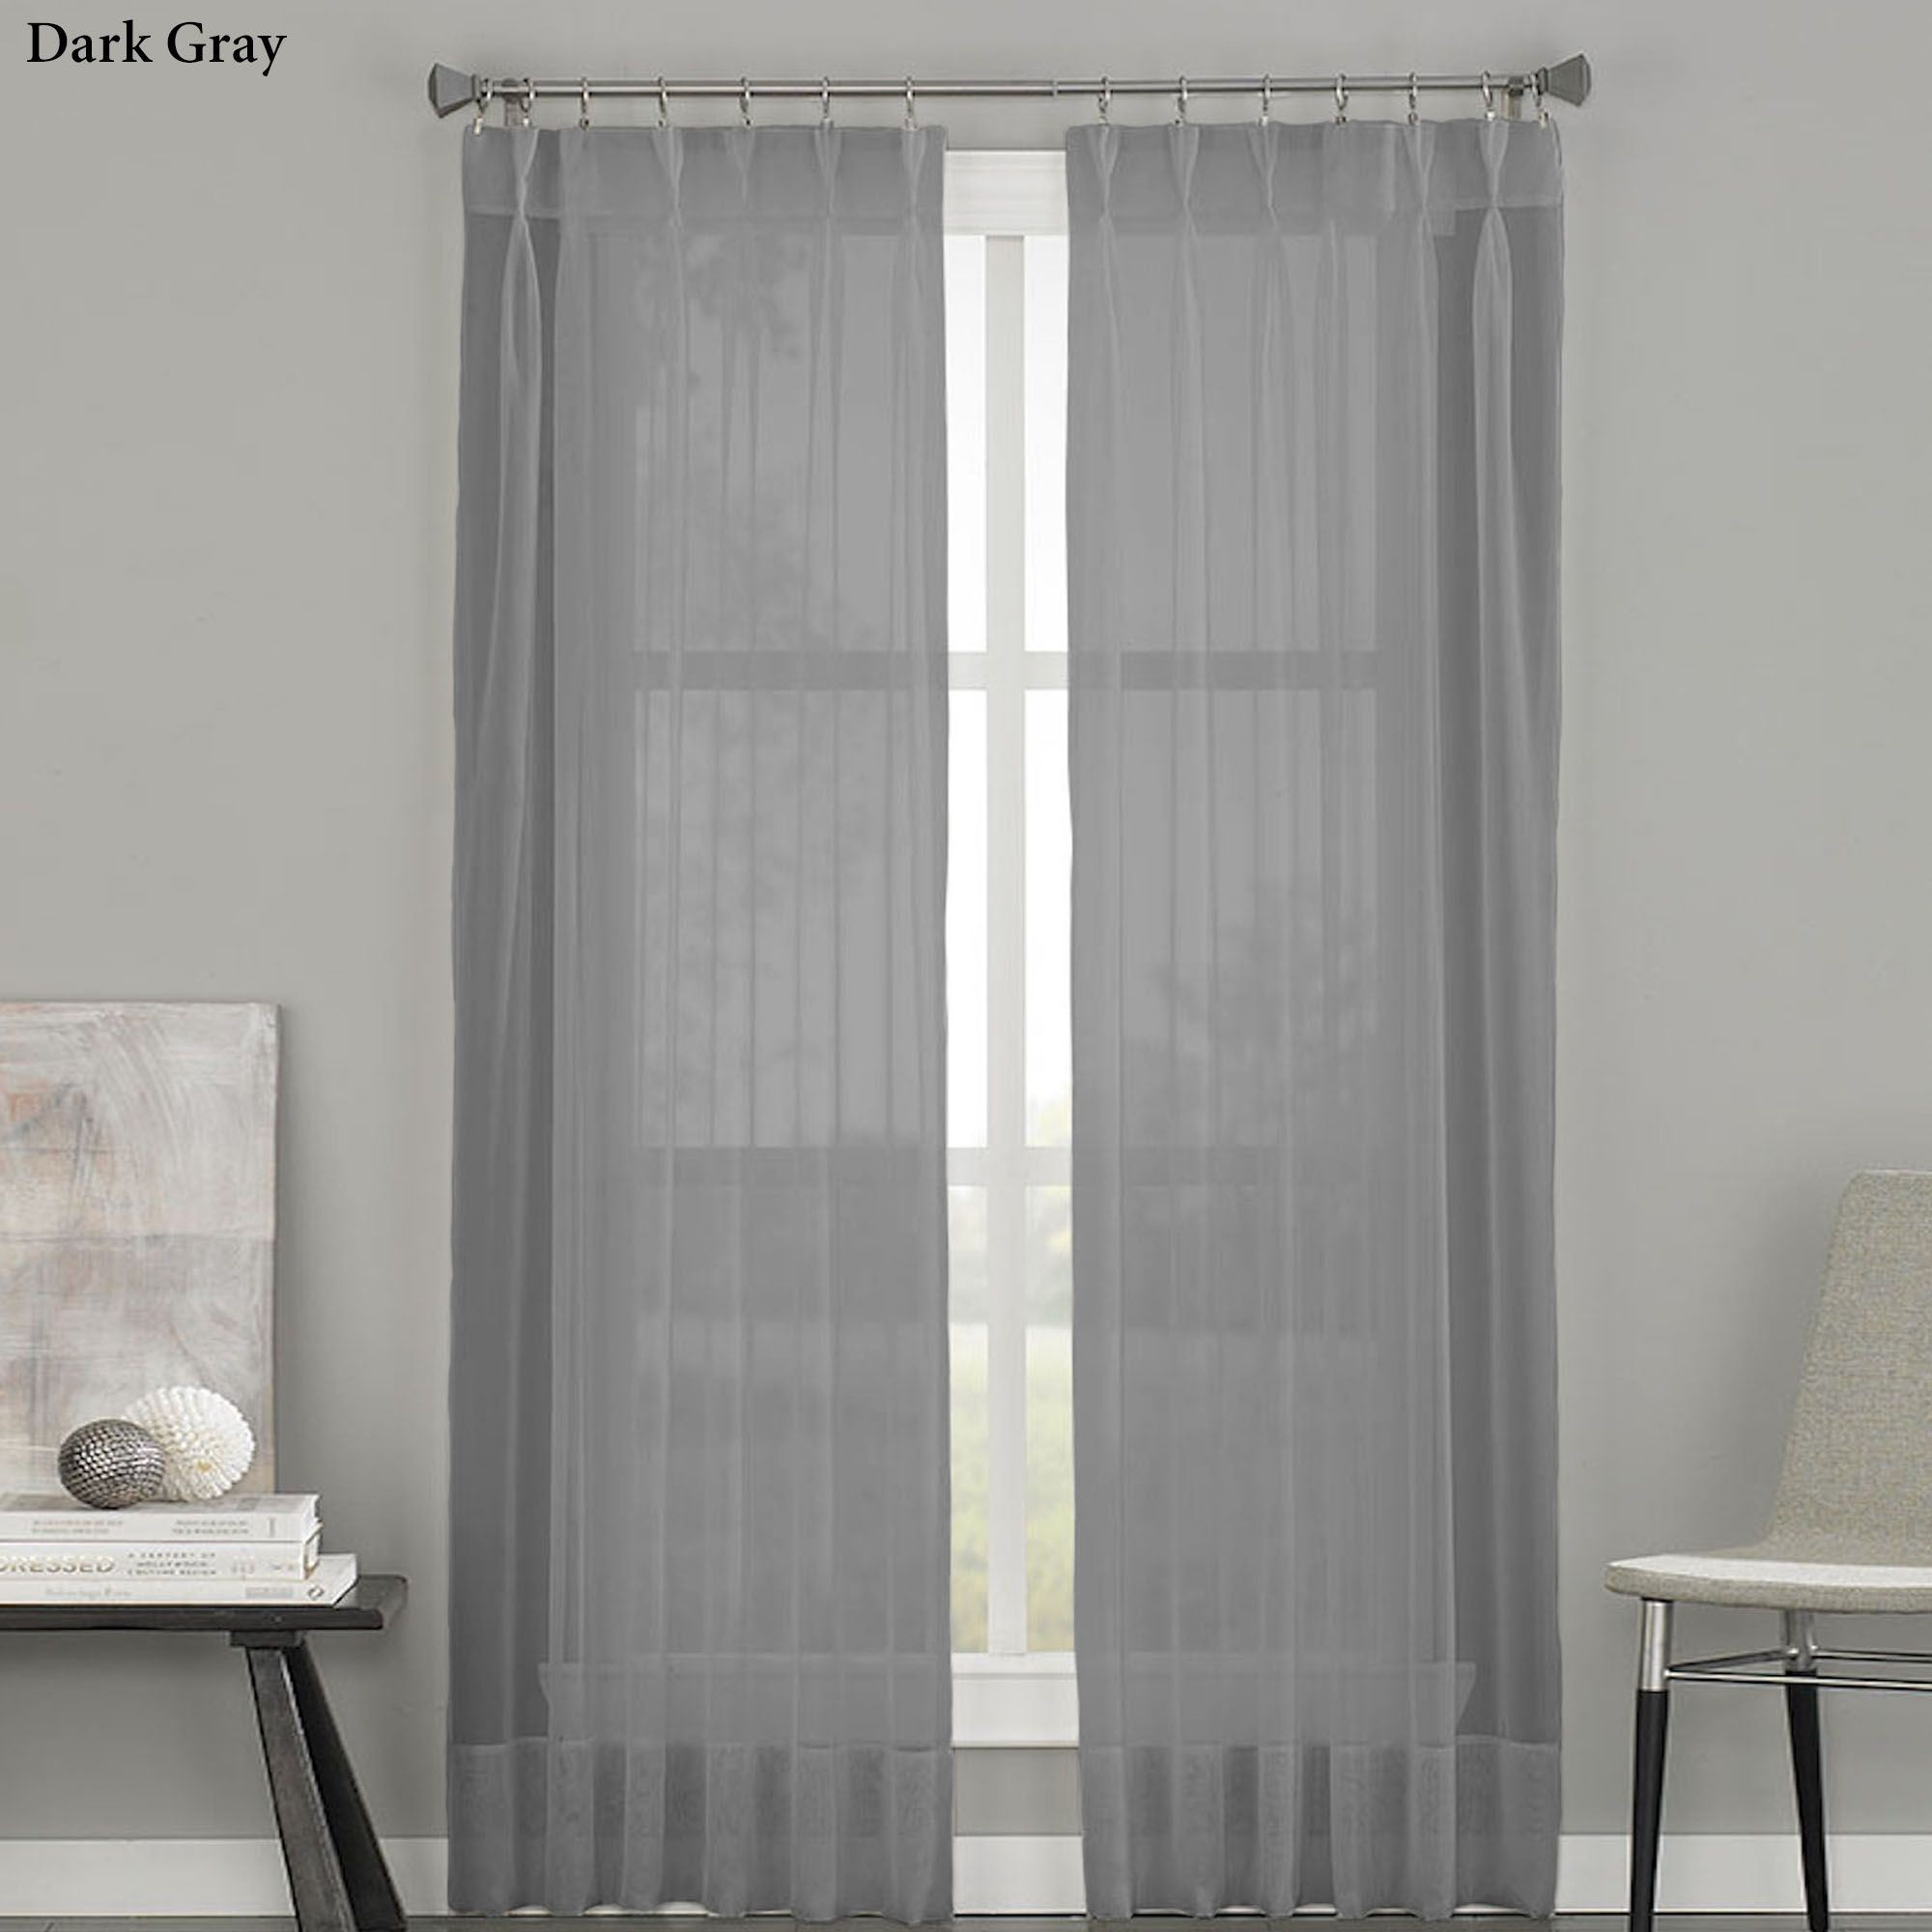 Soho Sheer Voile Pinch Pleat Curtain Panels Intended For Dark Grey Sheer Curtains (Image 24 of 25)